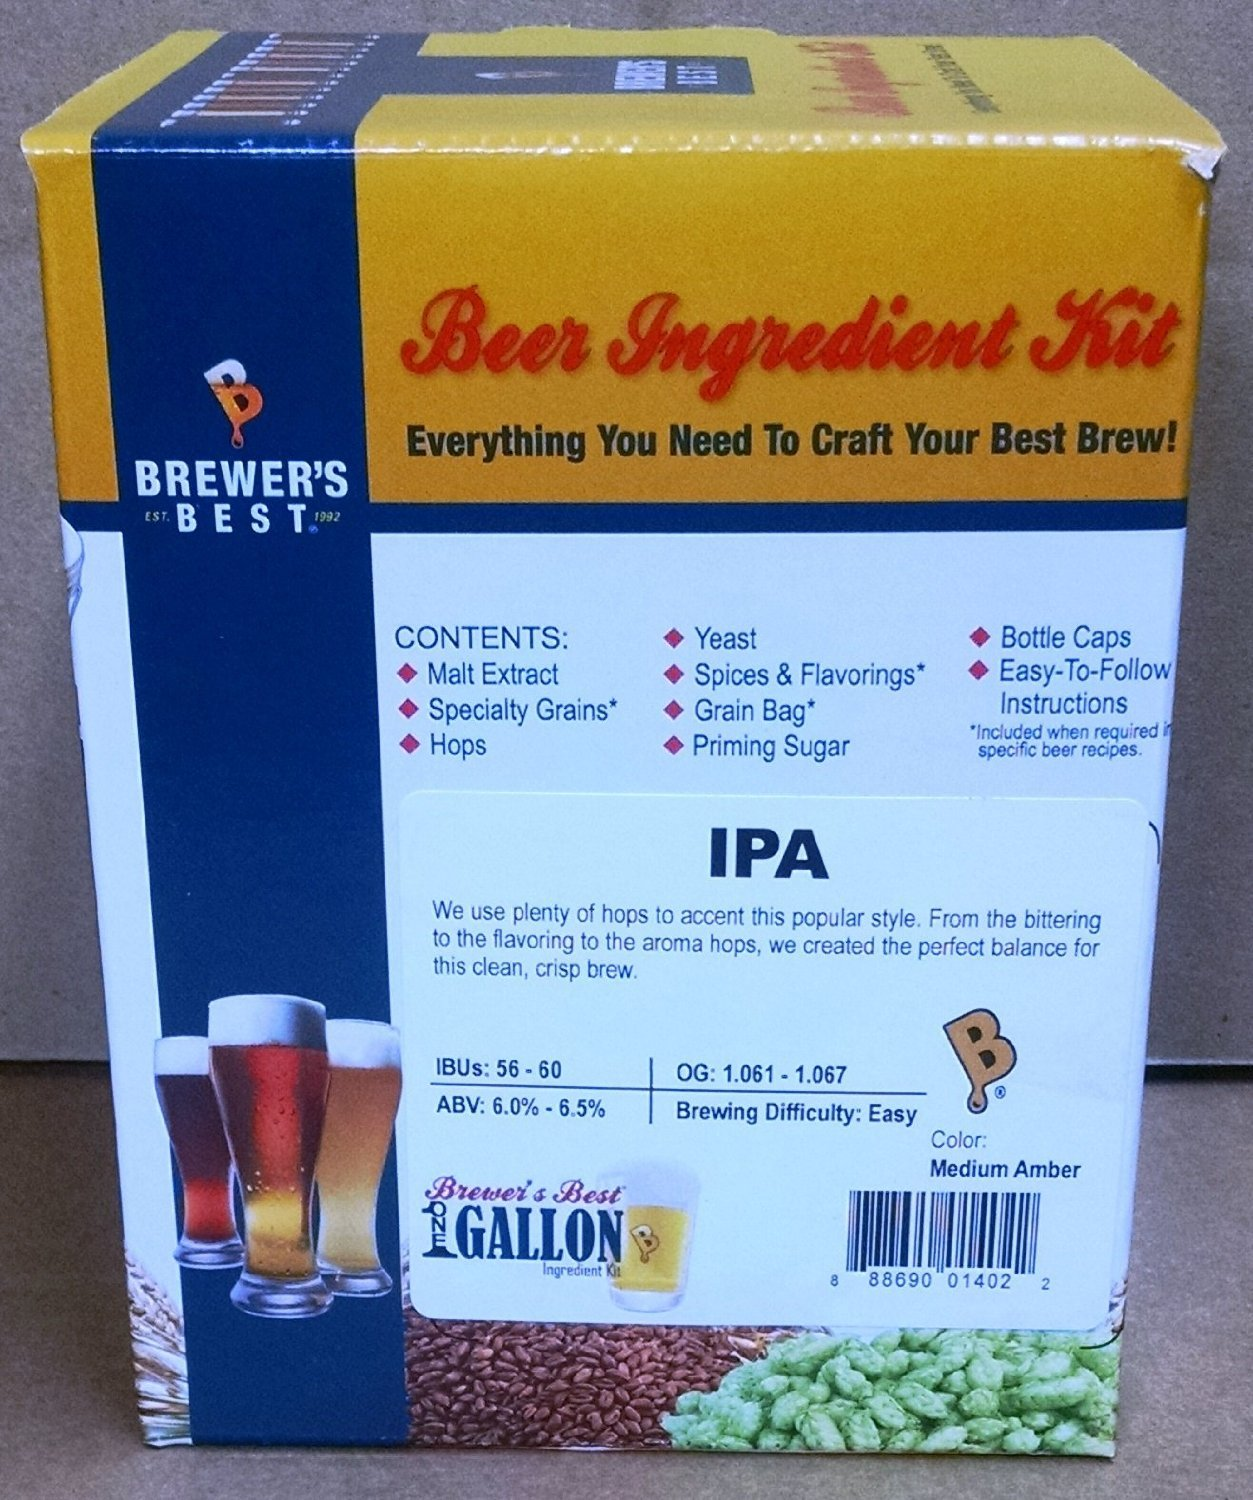 Brewer's Best One Gallon Ingredient Kit (IPA - India Pale Ale)